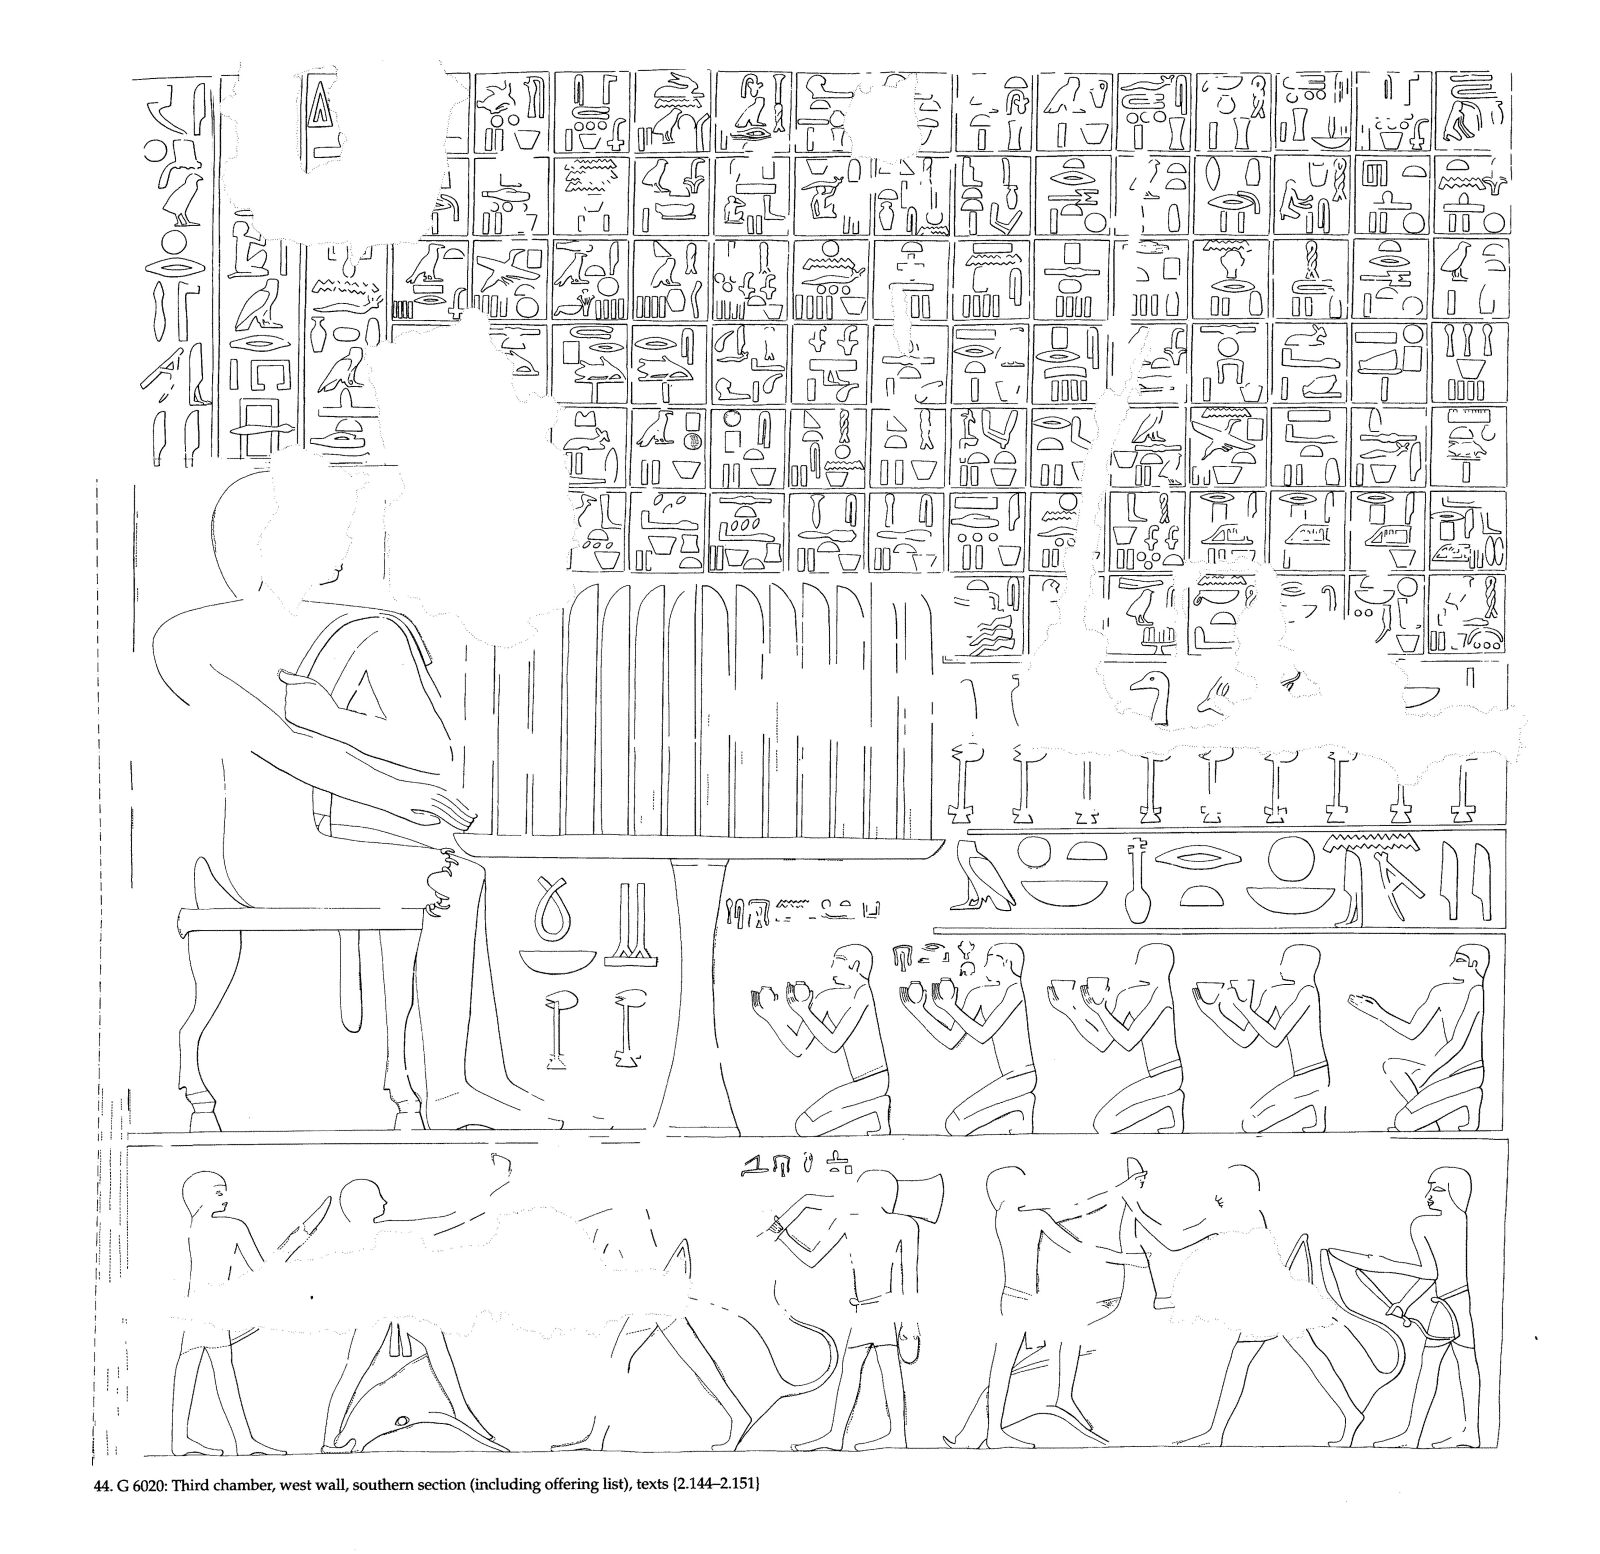 Drawings: G 6020: relief from third chamber, W wall, S section